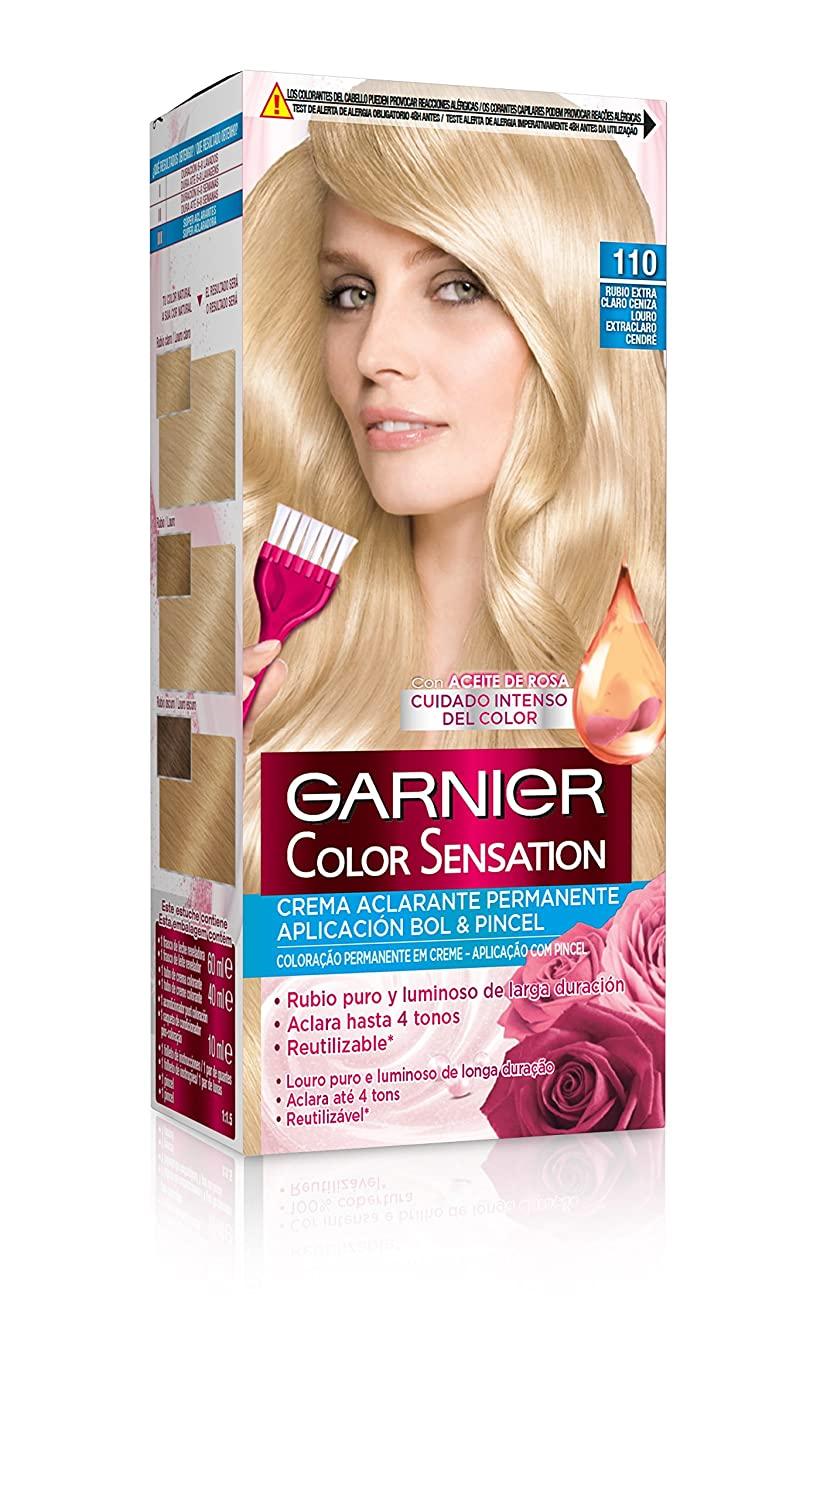 Coloración Color Sensation nº110 Rubio Extra Claro de Garnier: Amazon.es: Belleza